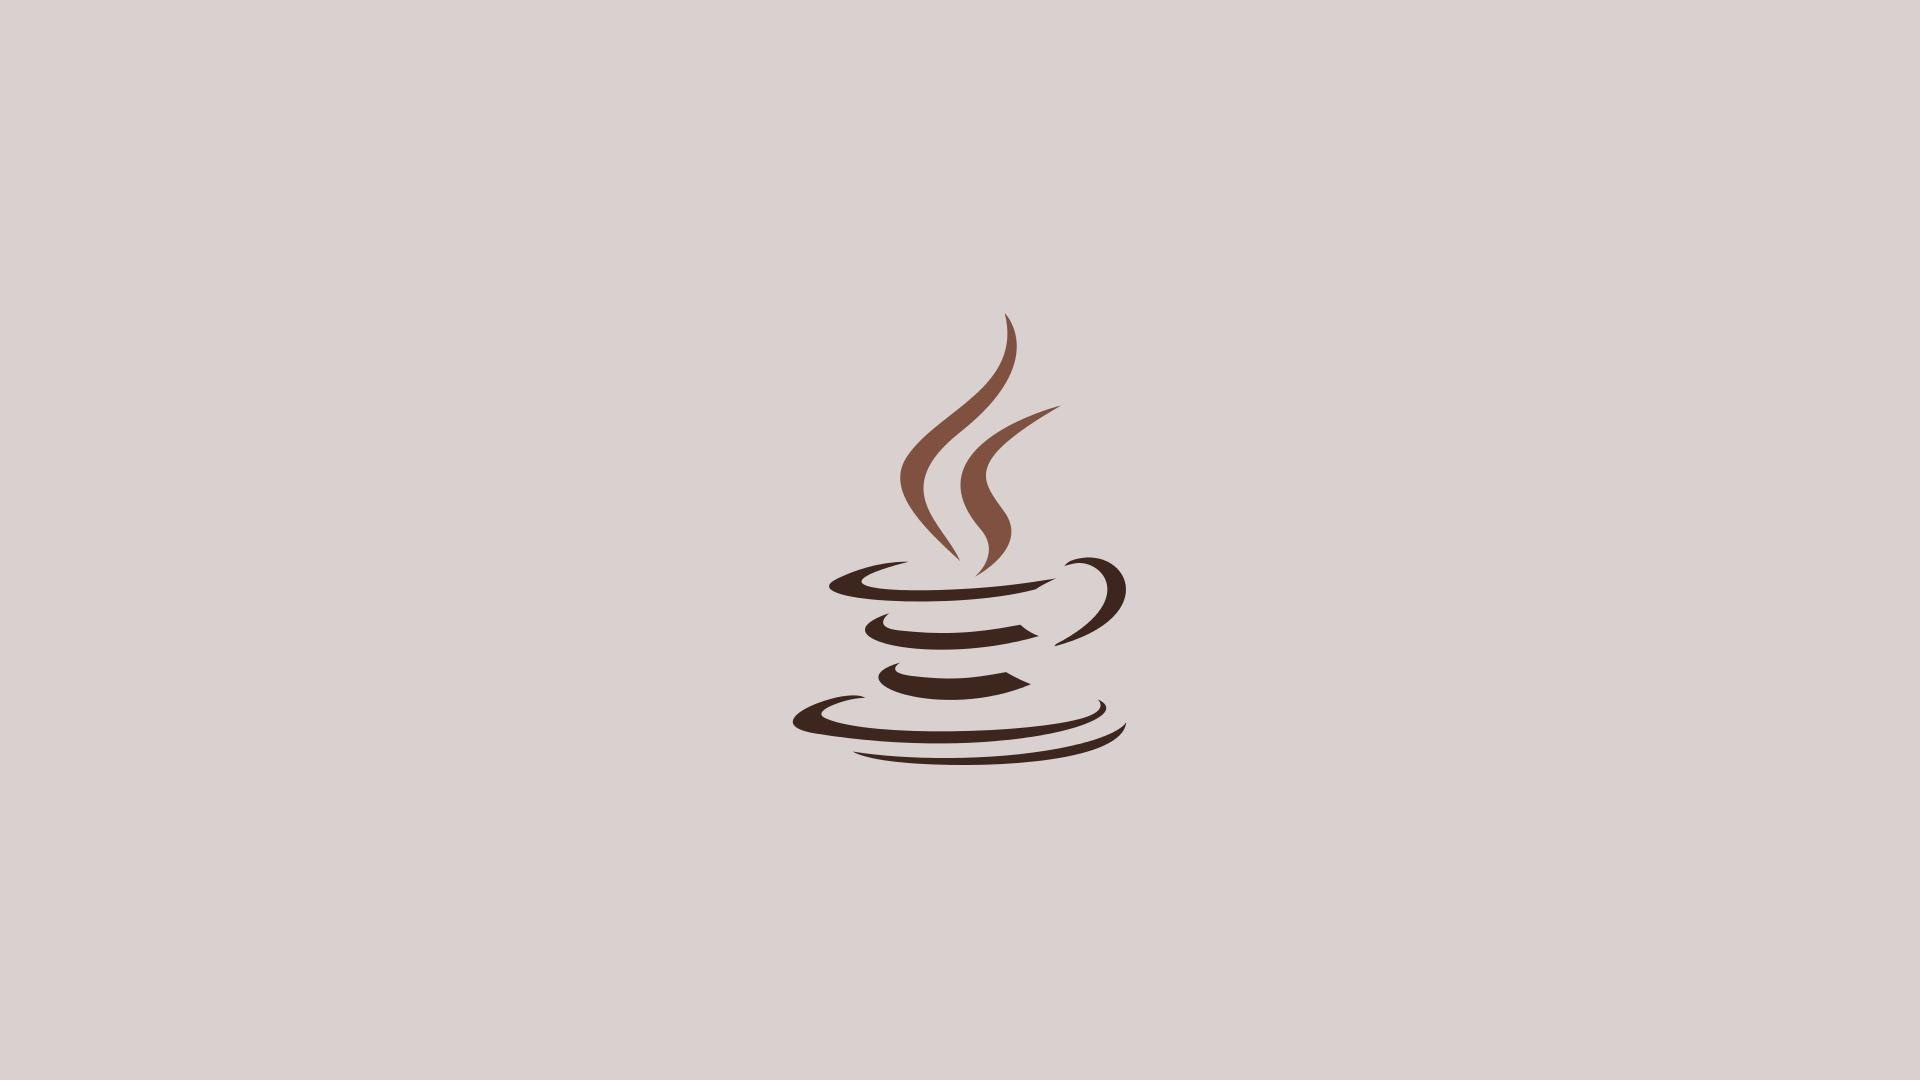 Java wallpaper 1920x1080